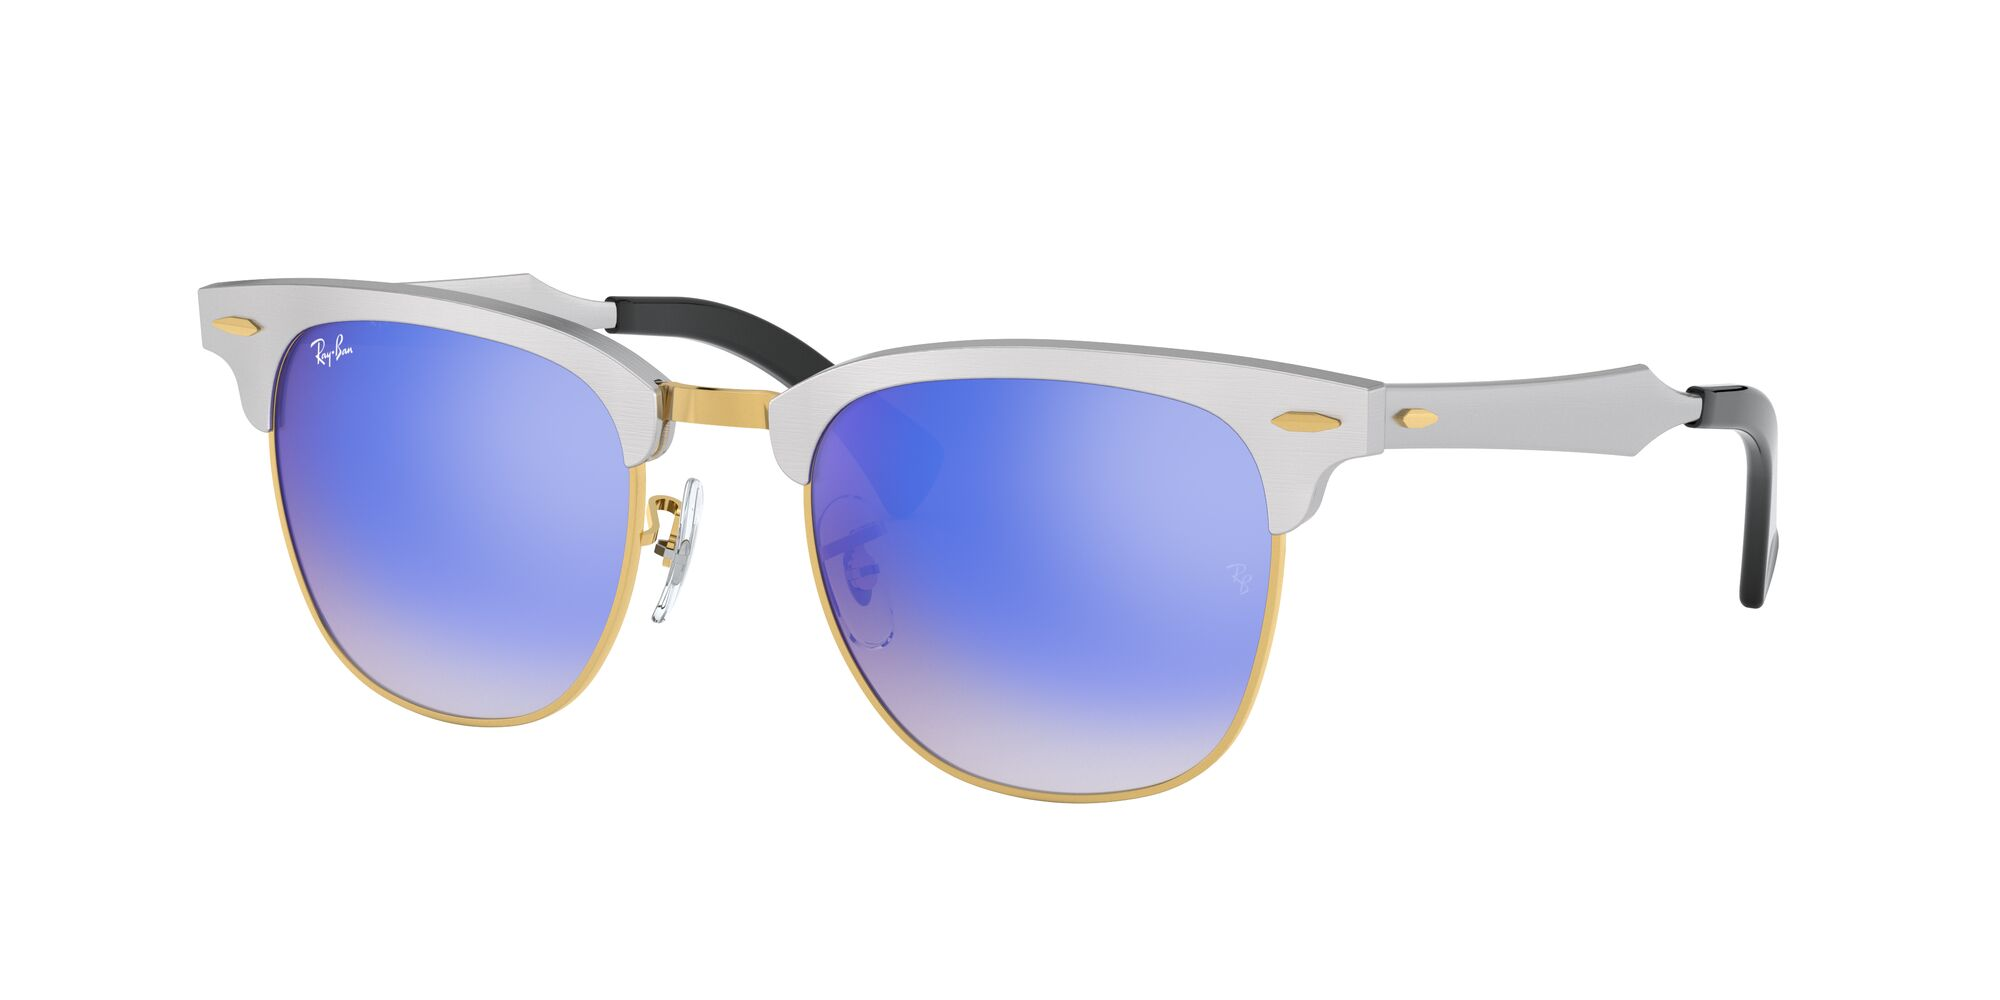 Angle_Left01 Ray-Ban Ray-Ban 0RB3507 137/7Q 51/21 Zilver/Blauw